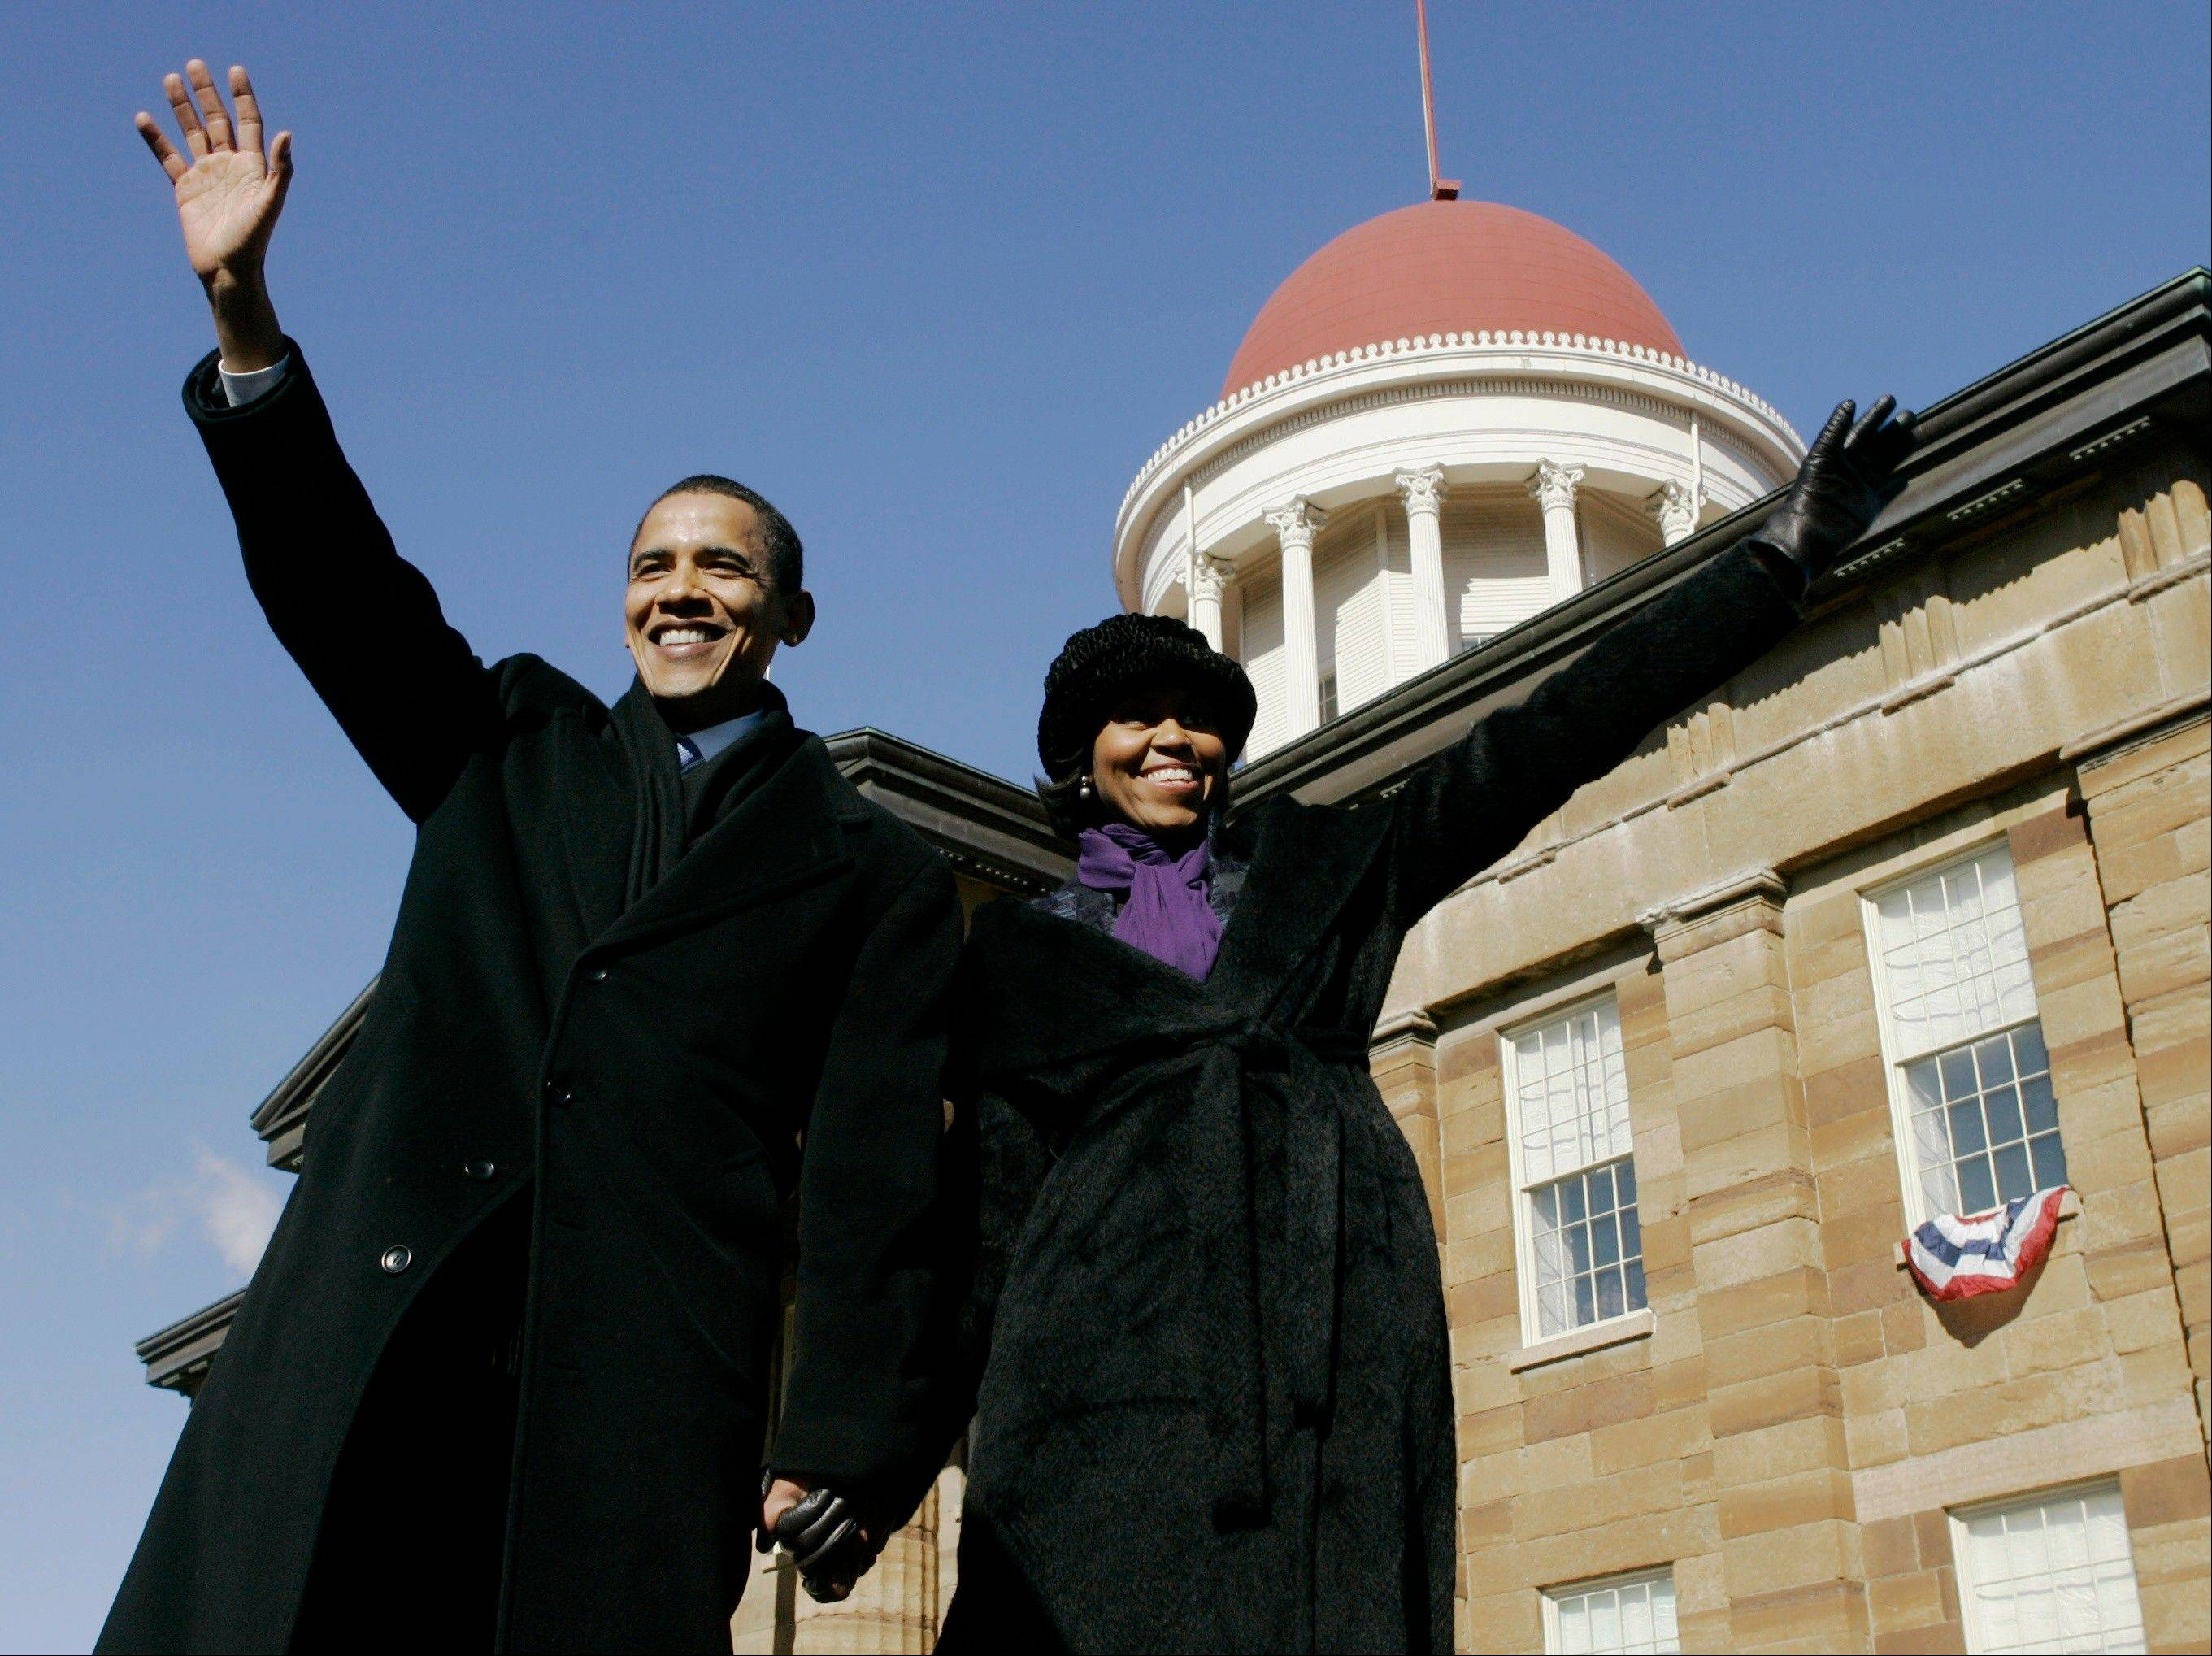 In this Feb. 10, 2007, file photo, then-Sen. Barack Obama, D-Ill., and his wife Michelle wave to the crowd after he announced his candidacy for president of the United States at the Old State Capitol in Springfield, Ill. She is 5-foot-11, and she is world-famous. Sometimes she inspires awe in her admirers. She has been accused of being the angry type. So when Michelle Obama meets people, she likes to bring things down to earth with a hug.